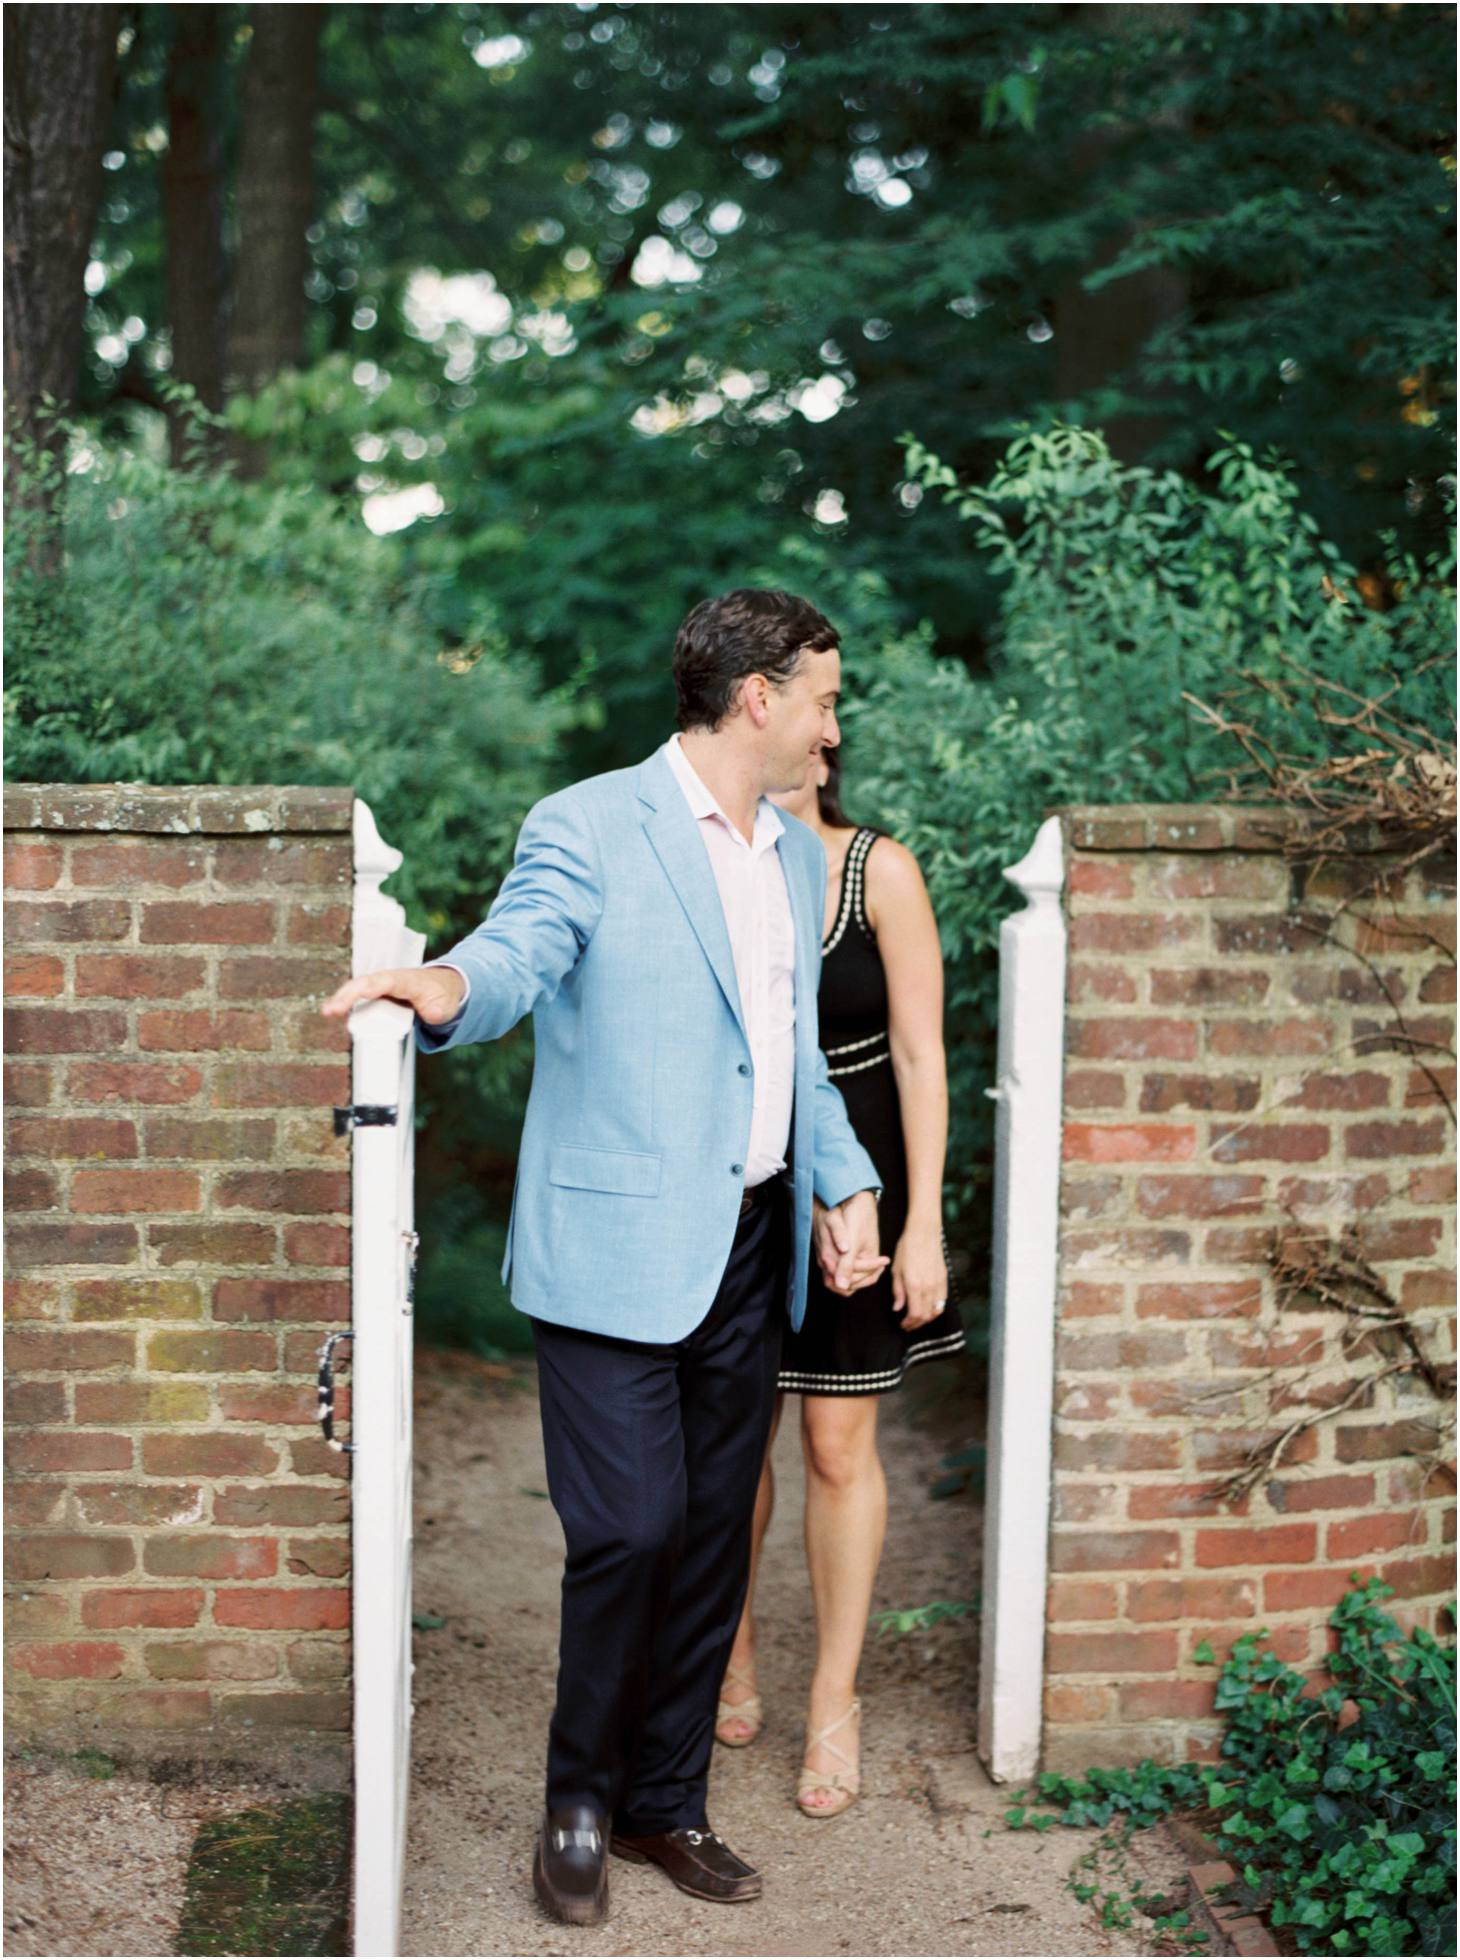 kim-stockwell-photography-fine-art-film-engagements-charlottesville-virginia-meghan-and-taylor_0846